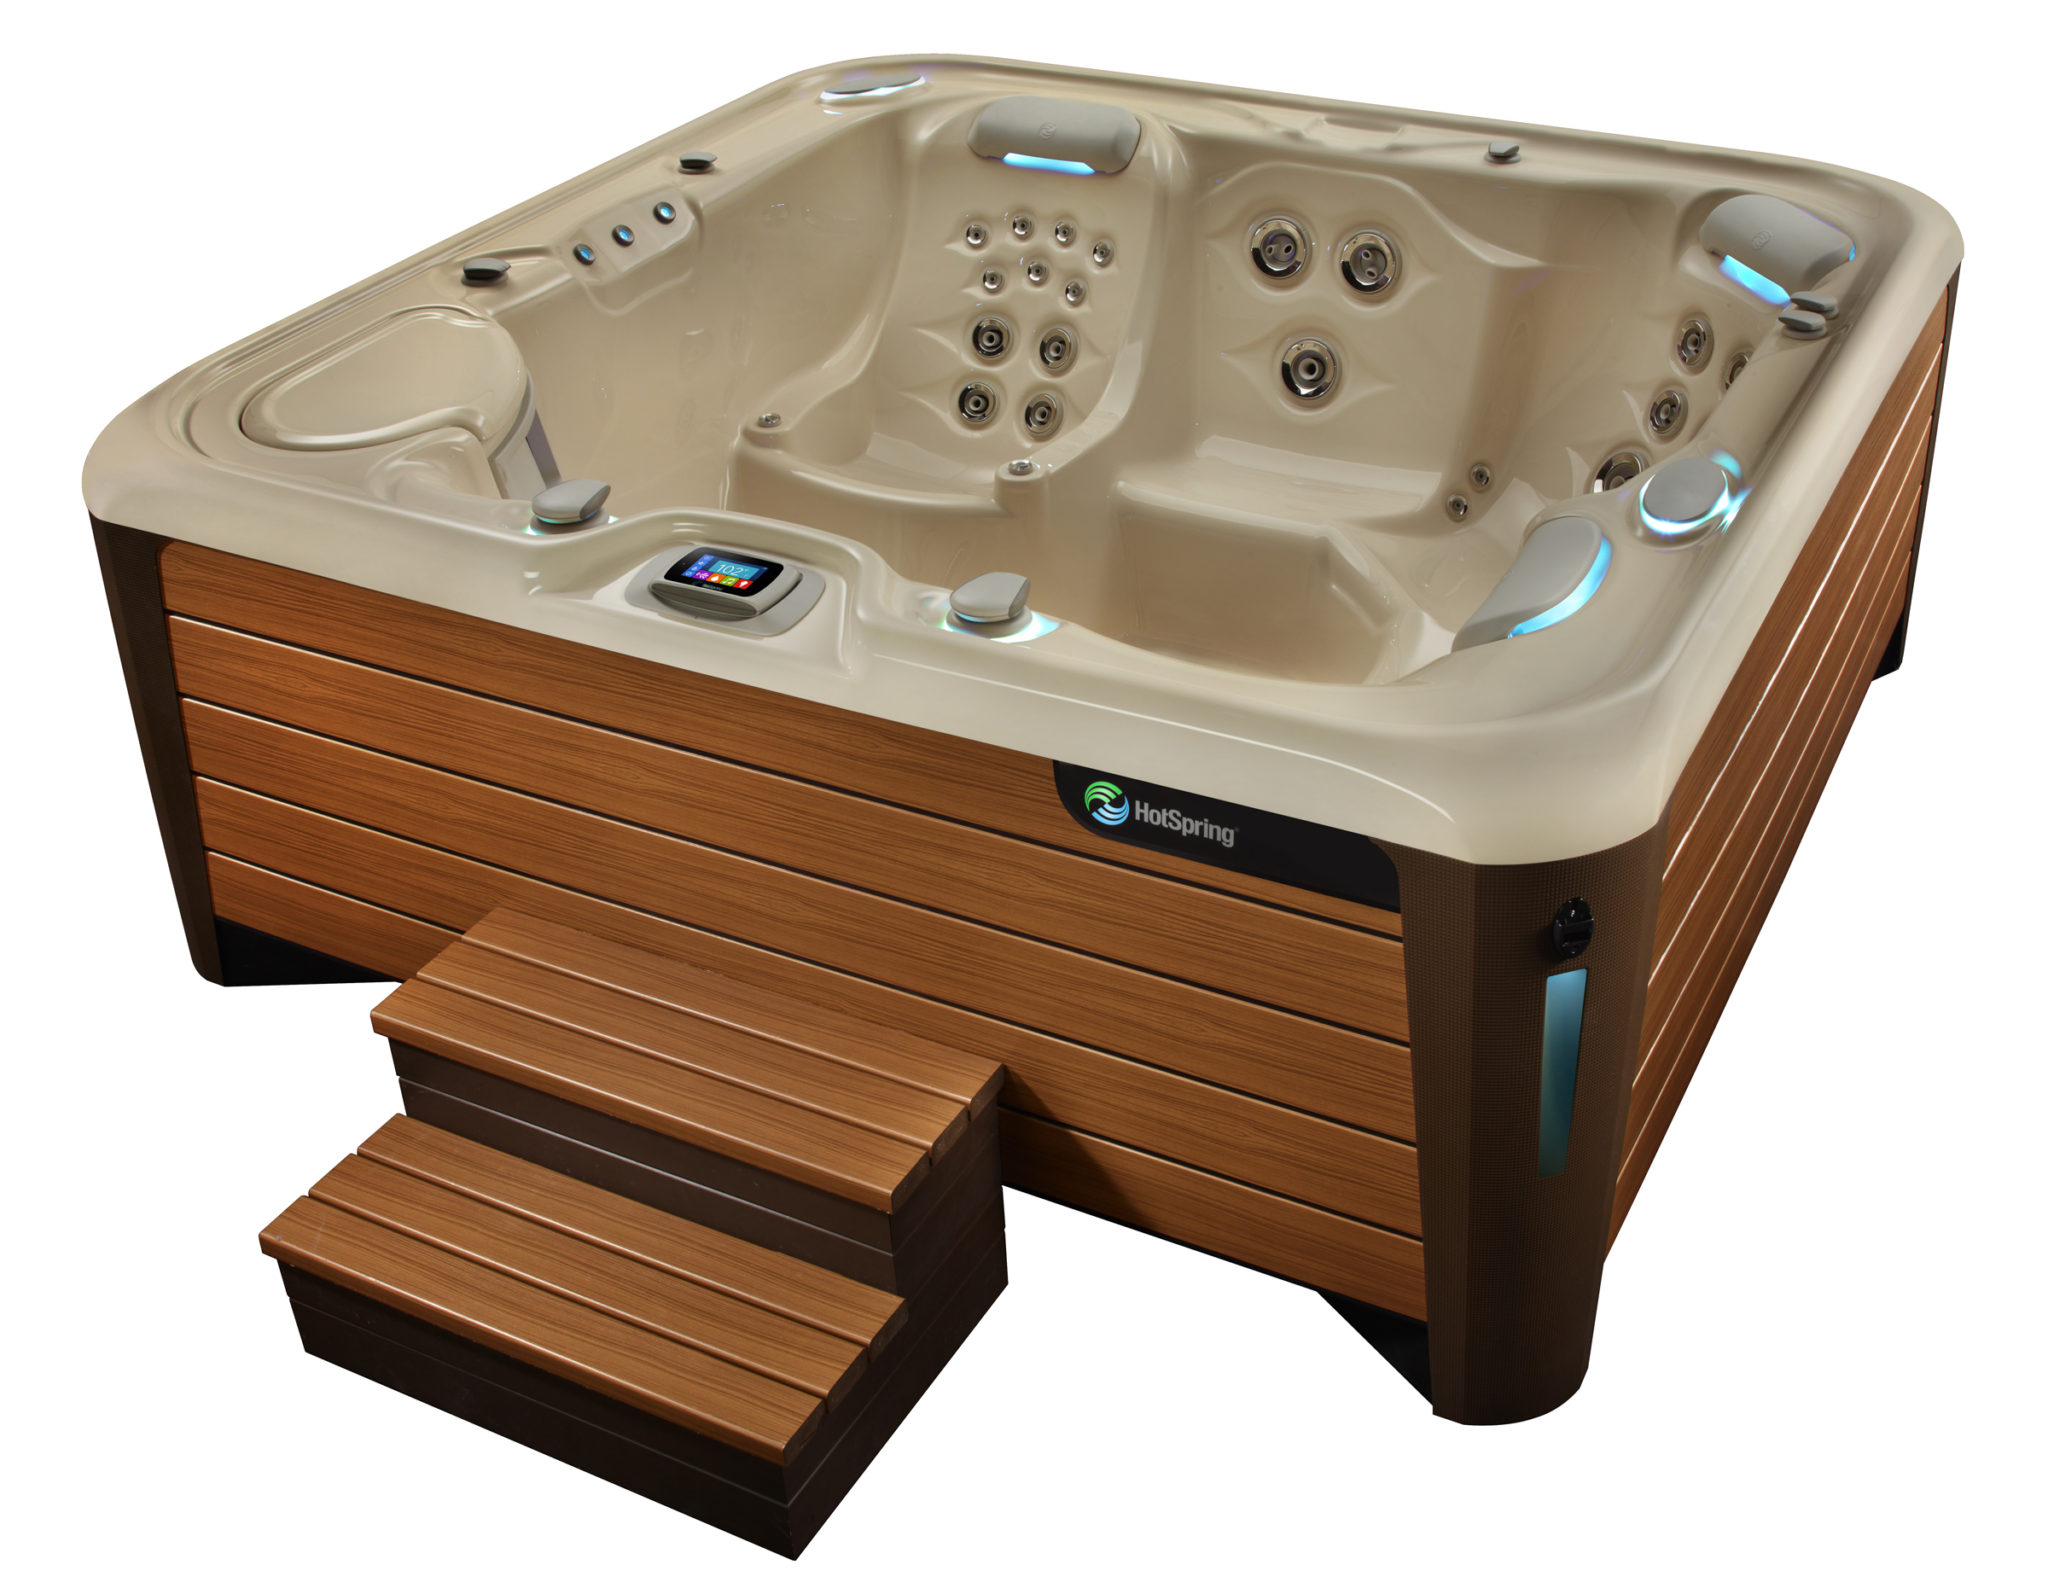 Hot Spring Highlife 2014 Envoy NXT Creme Teak Detail High Angle 01 - Hot Spring Hot Tubs